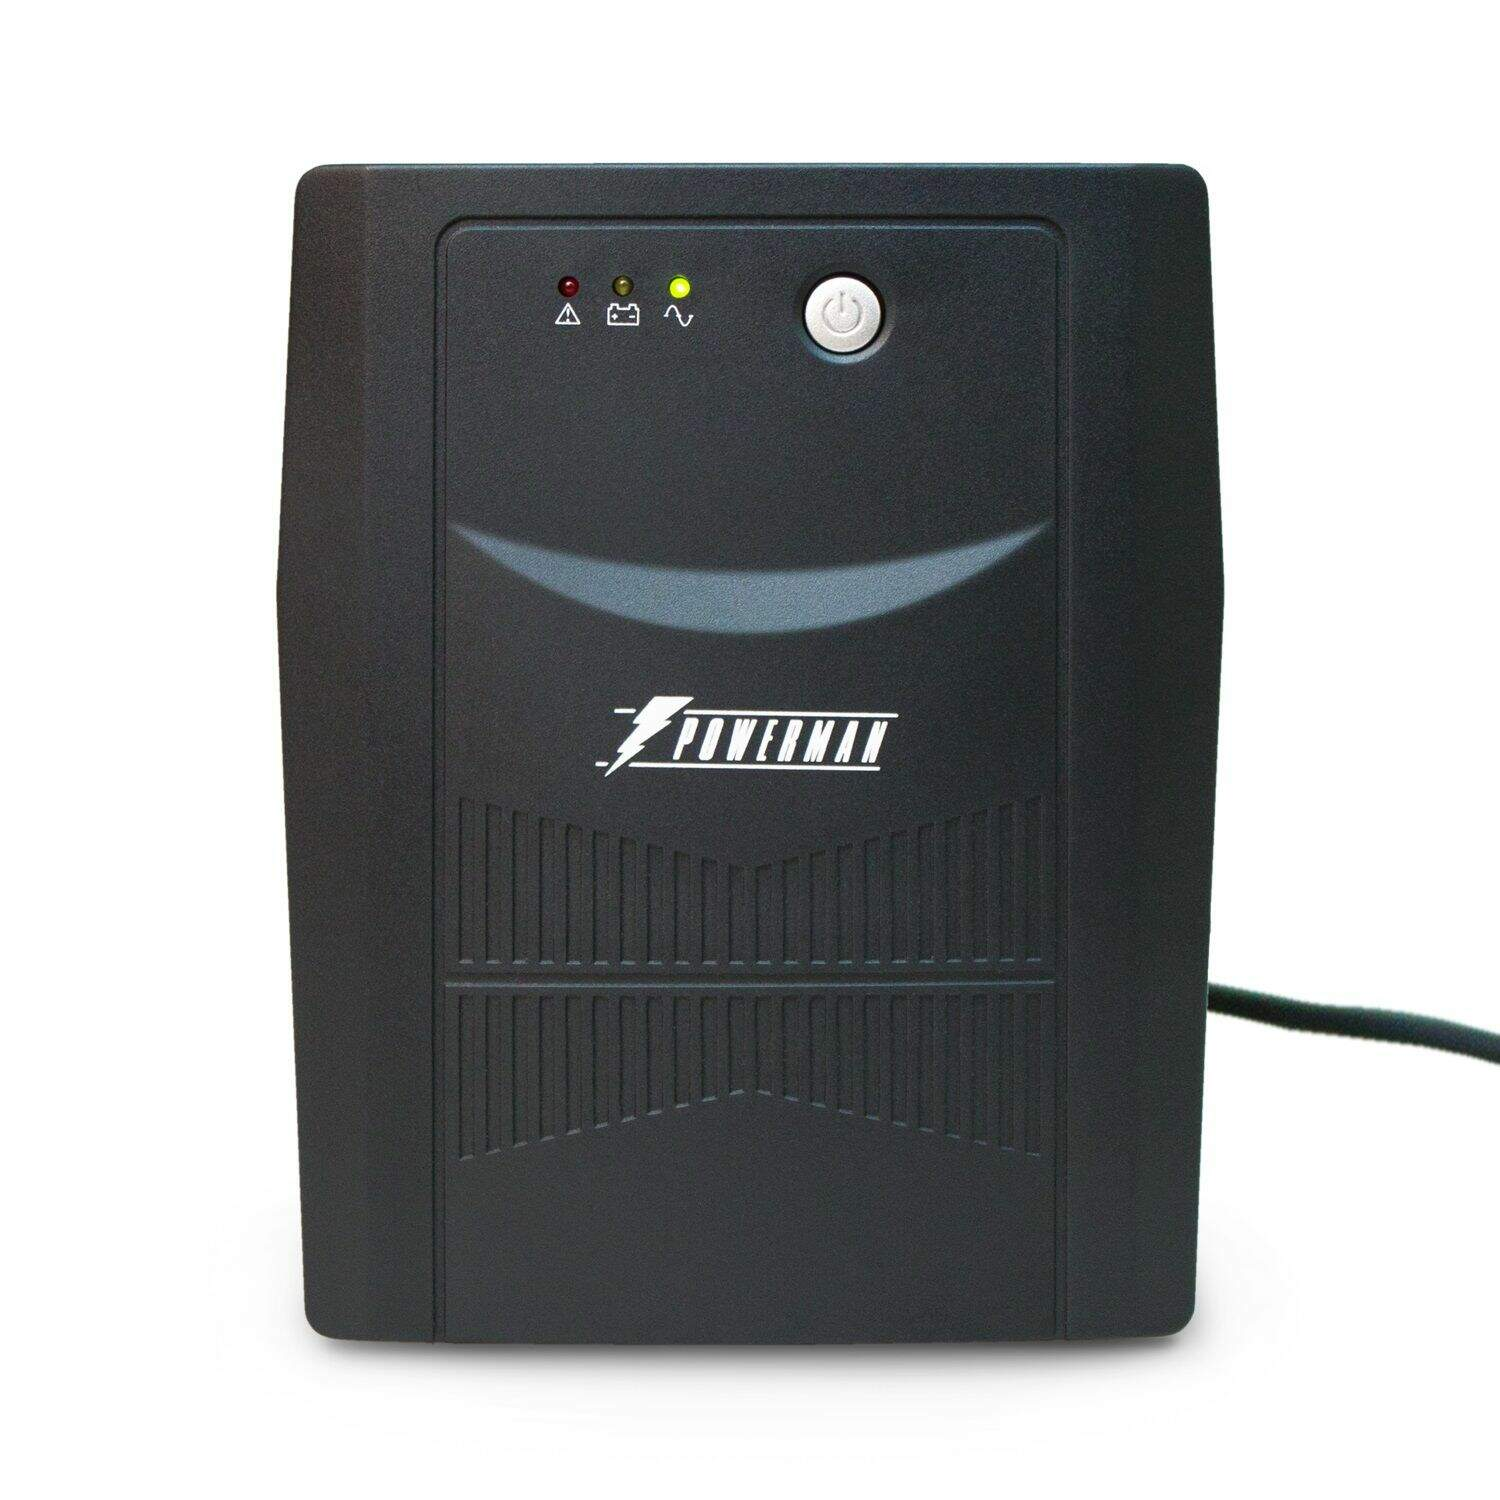 ИБП POWERMAN BACK PRO 2000 PLUS